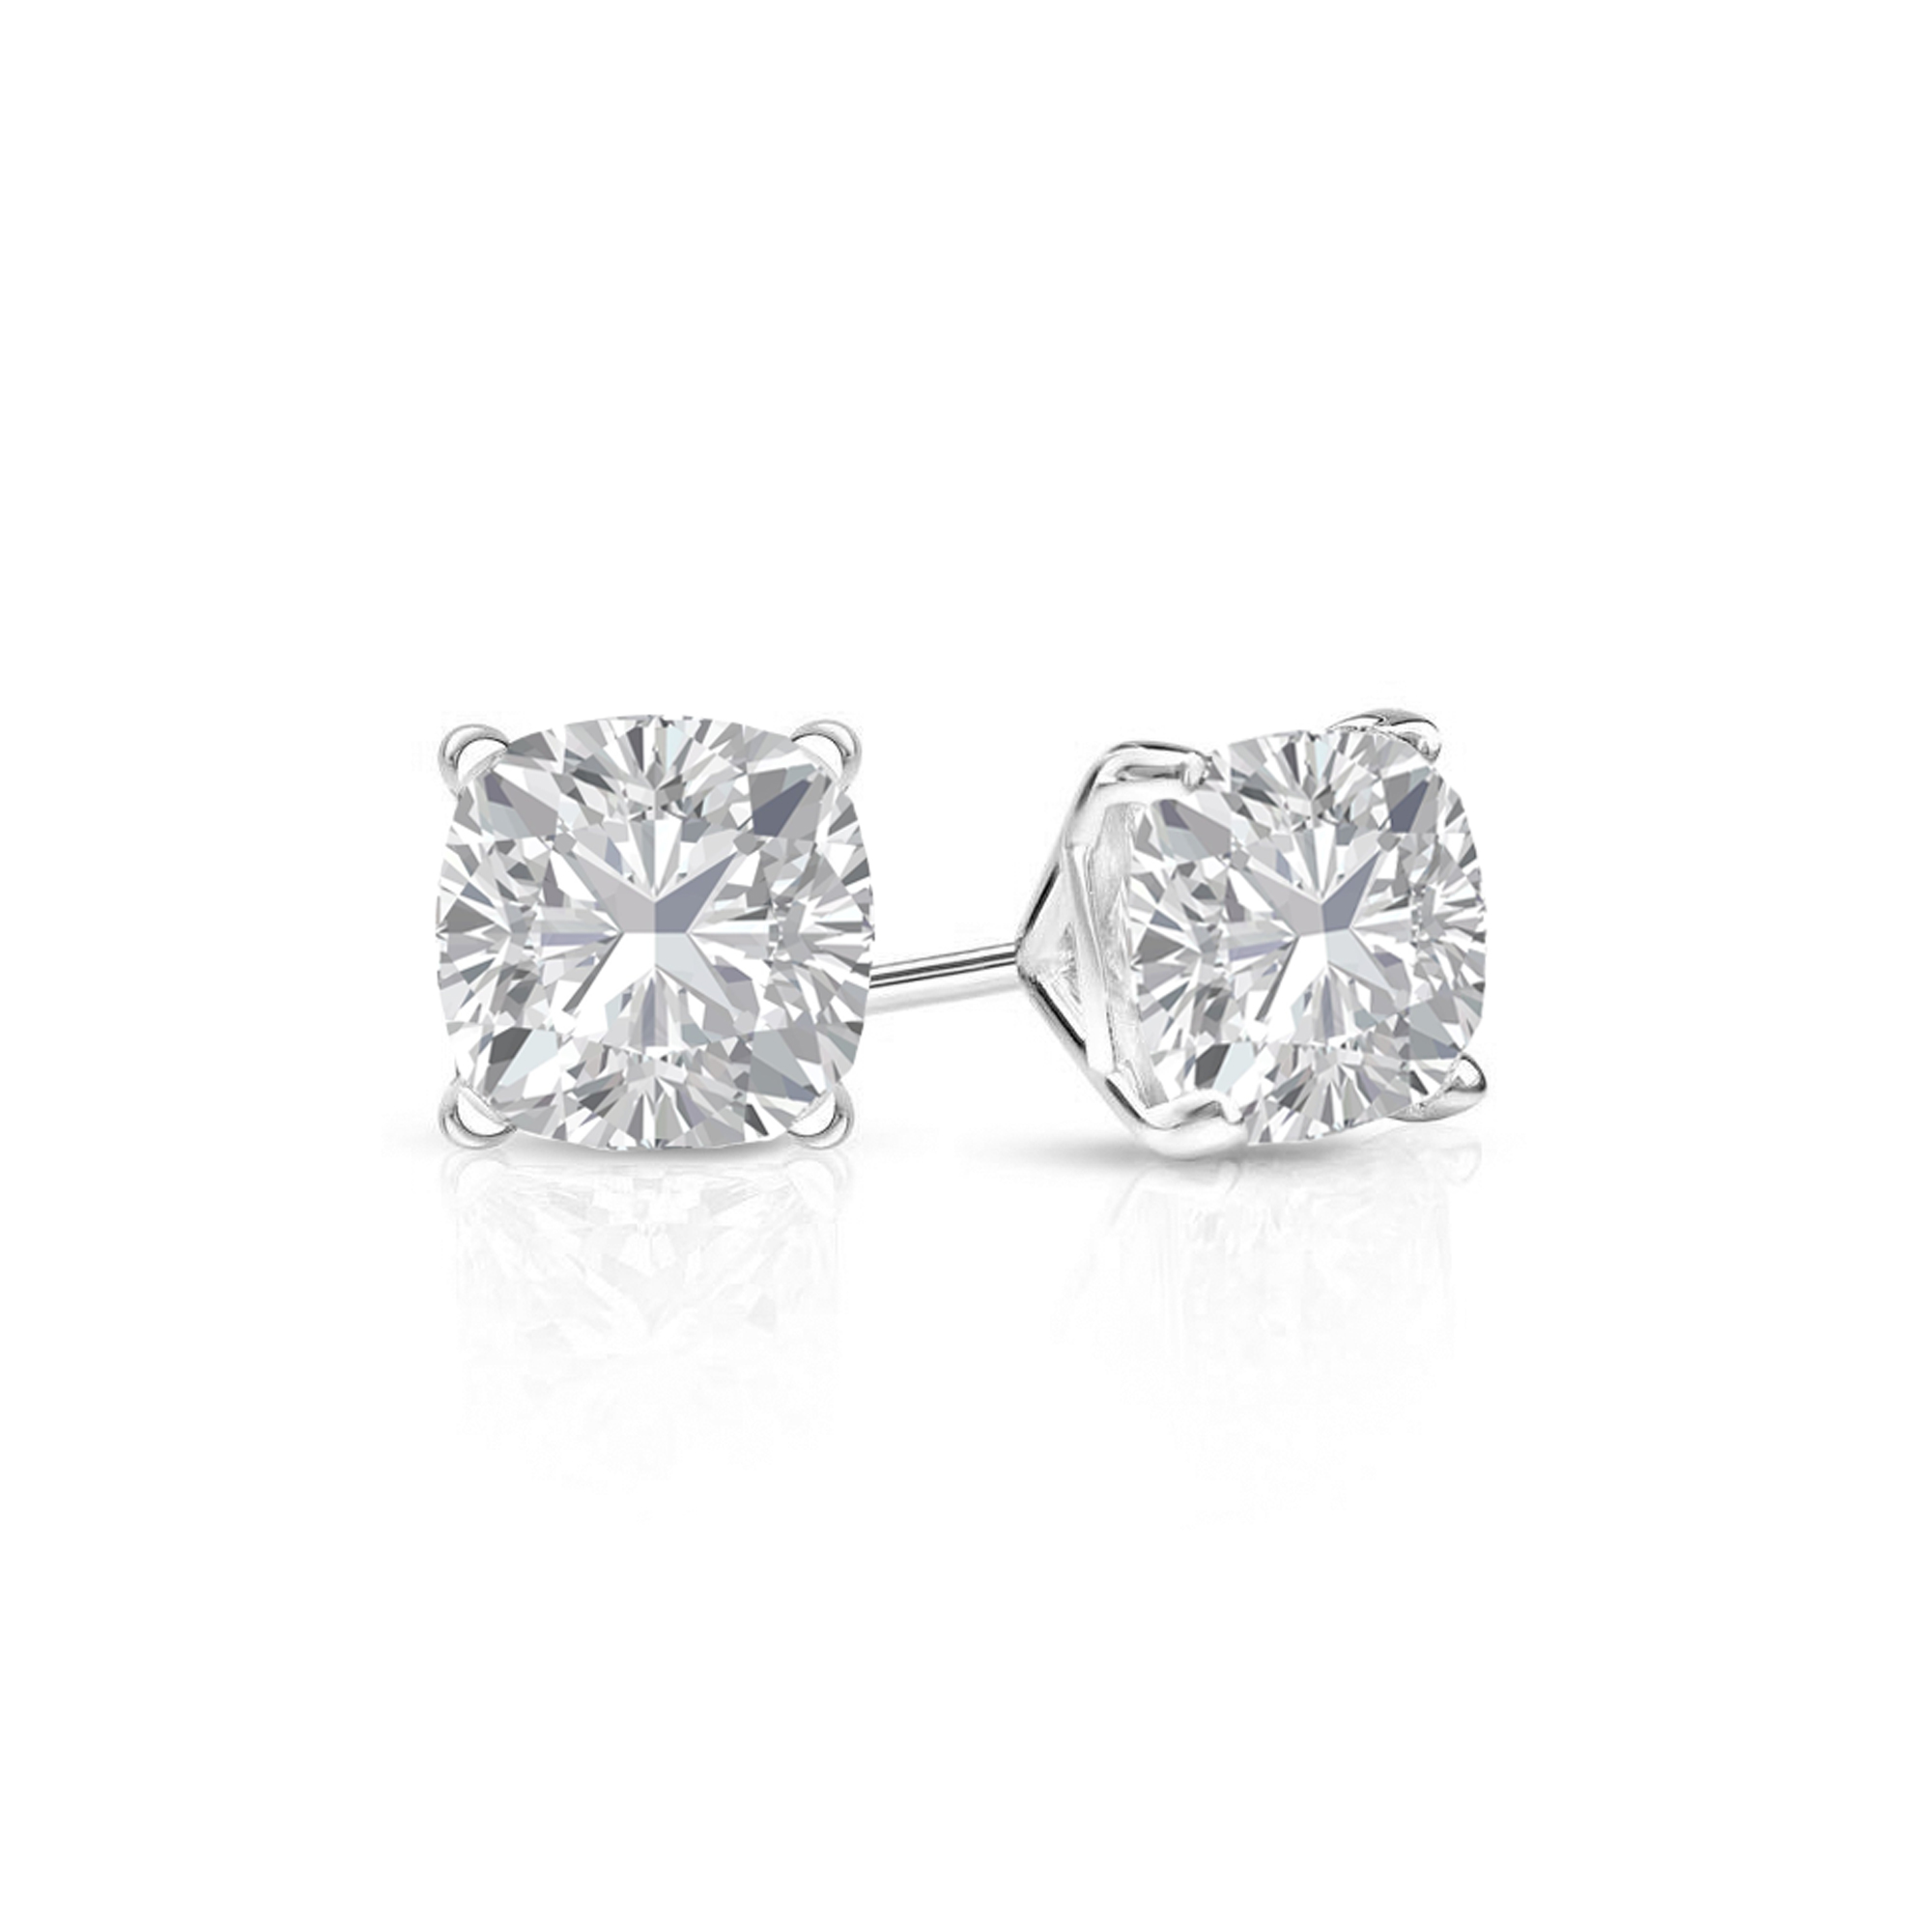 p round prong earrings moissanite